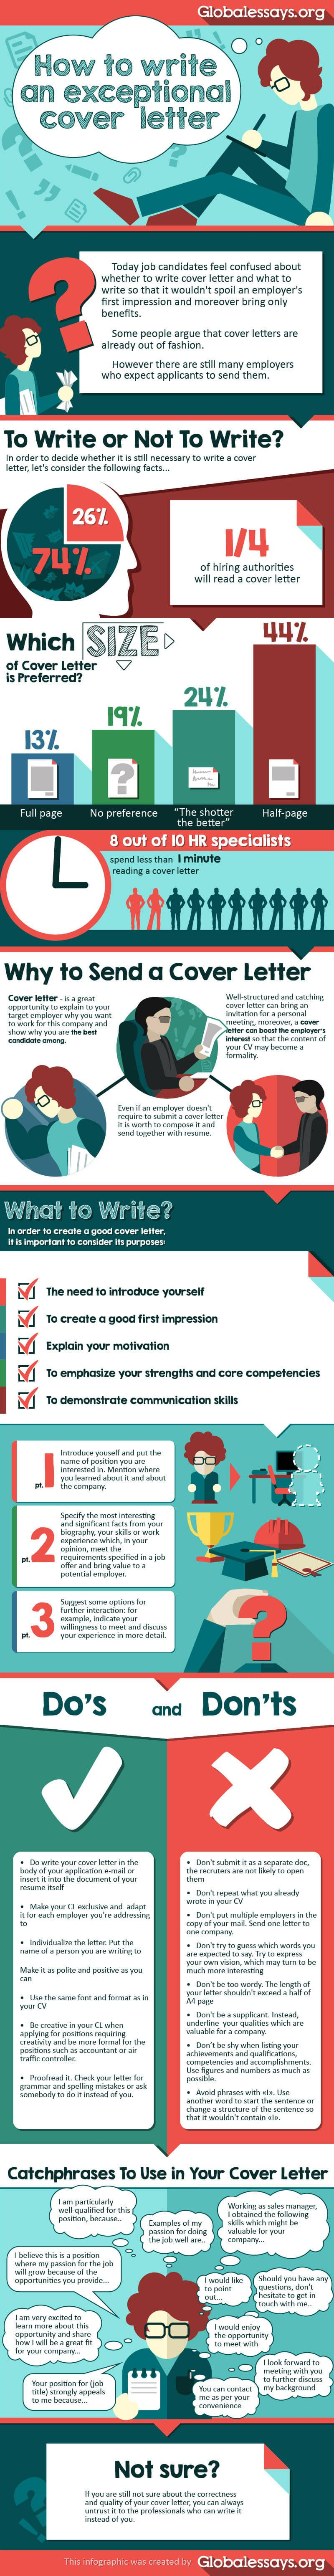 how to write an exceptional cover letter - Good Cover Letter For Job